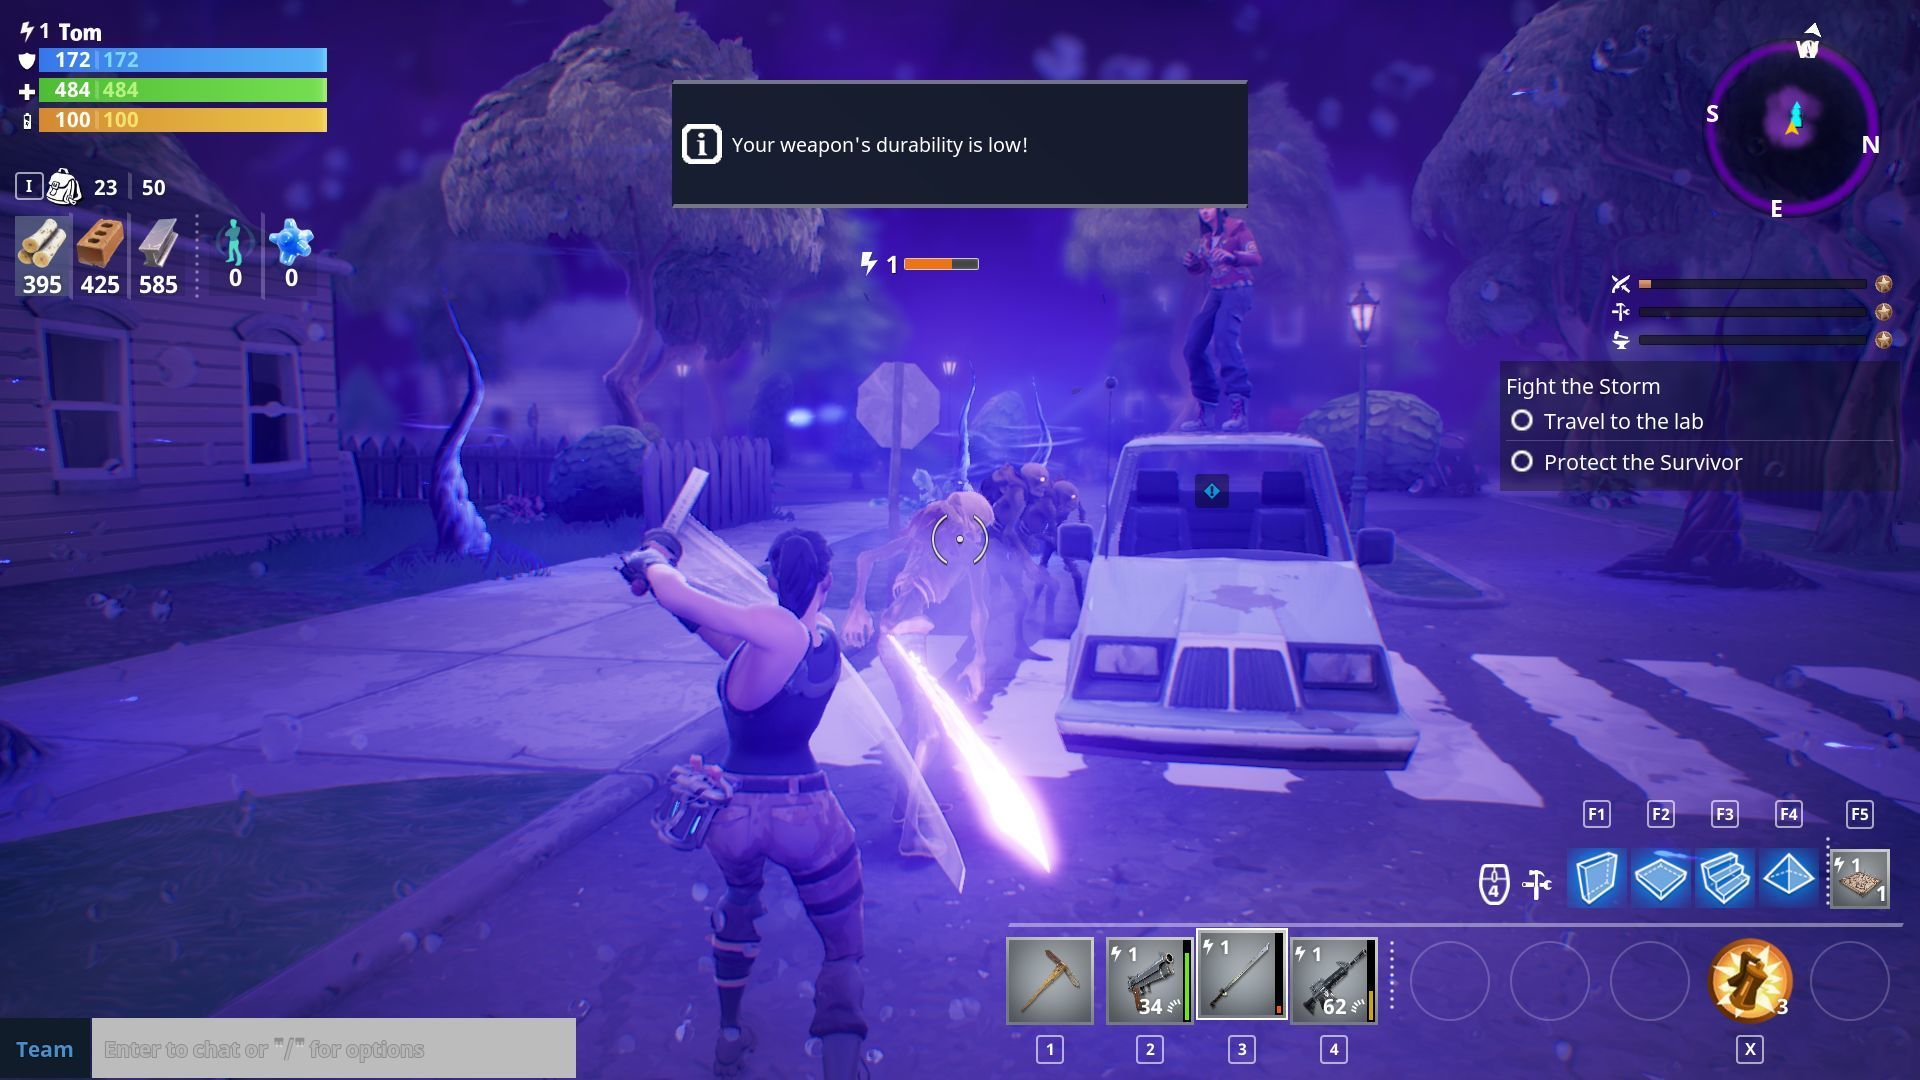 clicca per ingrandire - amd radeon hd 6750m 512 mb fortnite